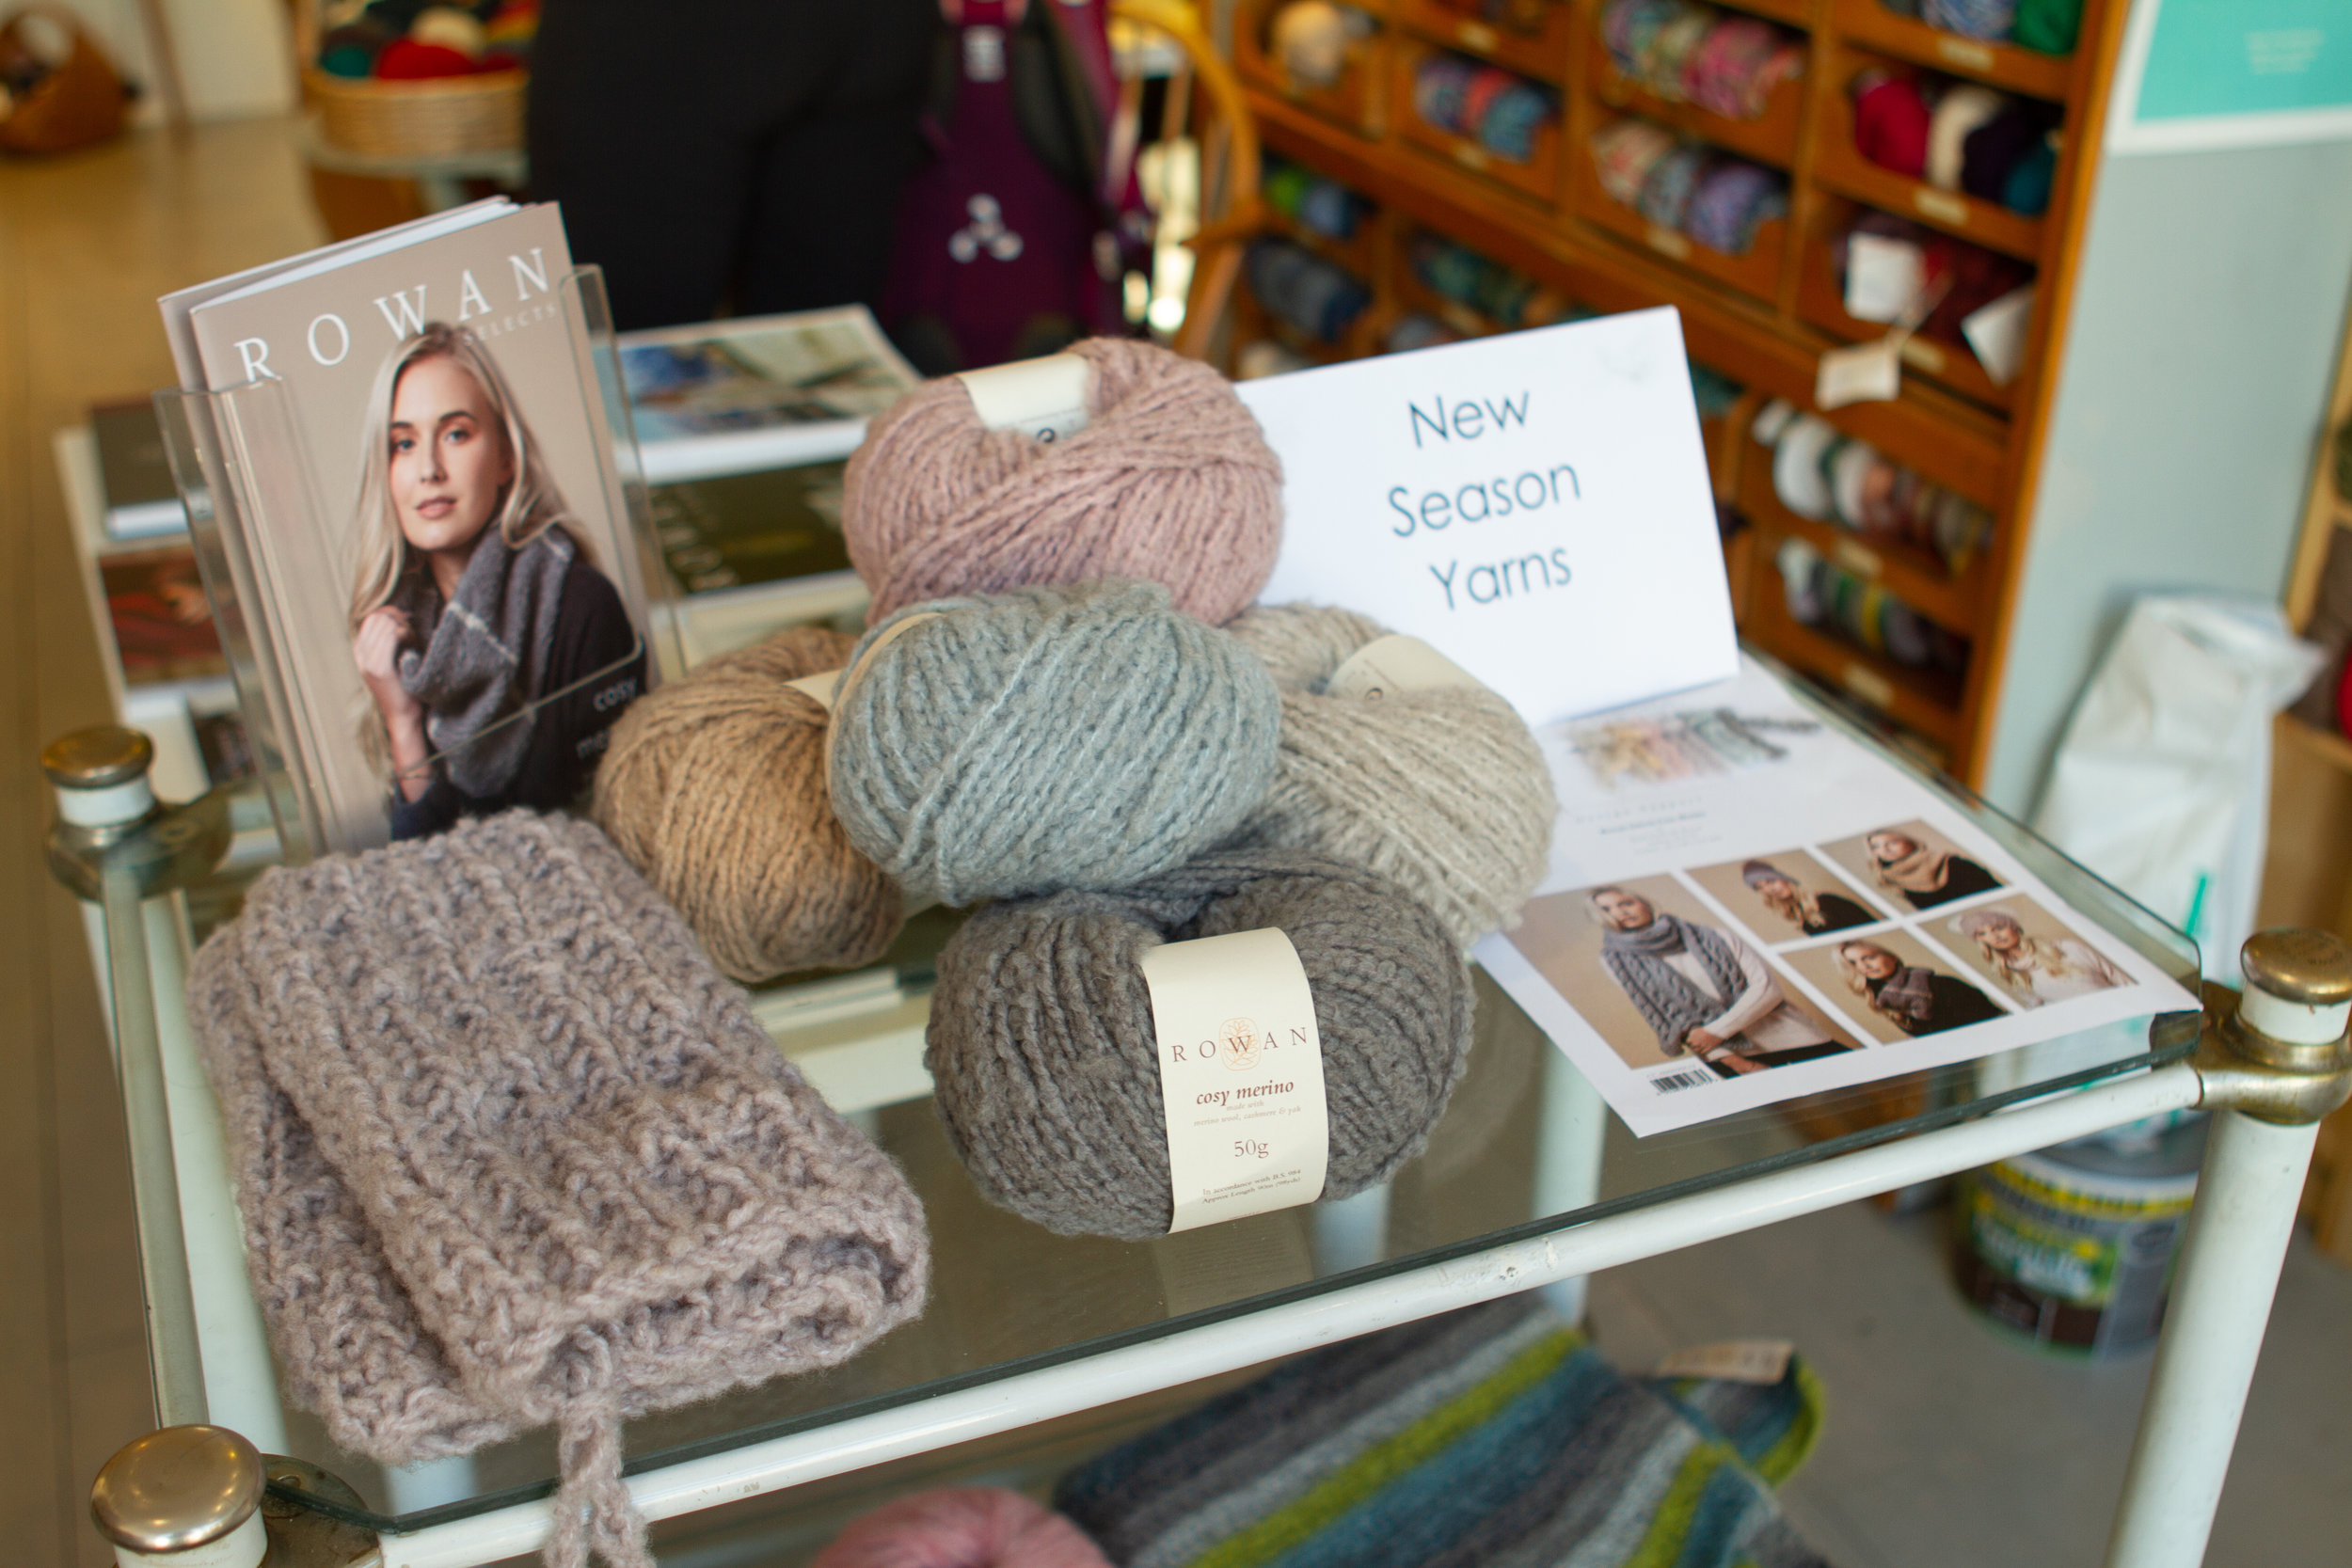 Tempting new yarns and project inspiration is at the ready at Sharp Works!